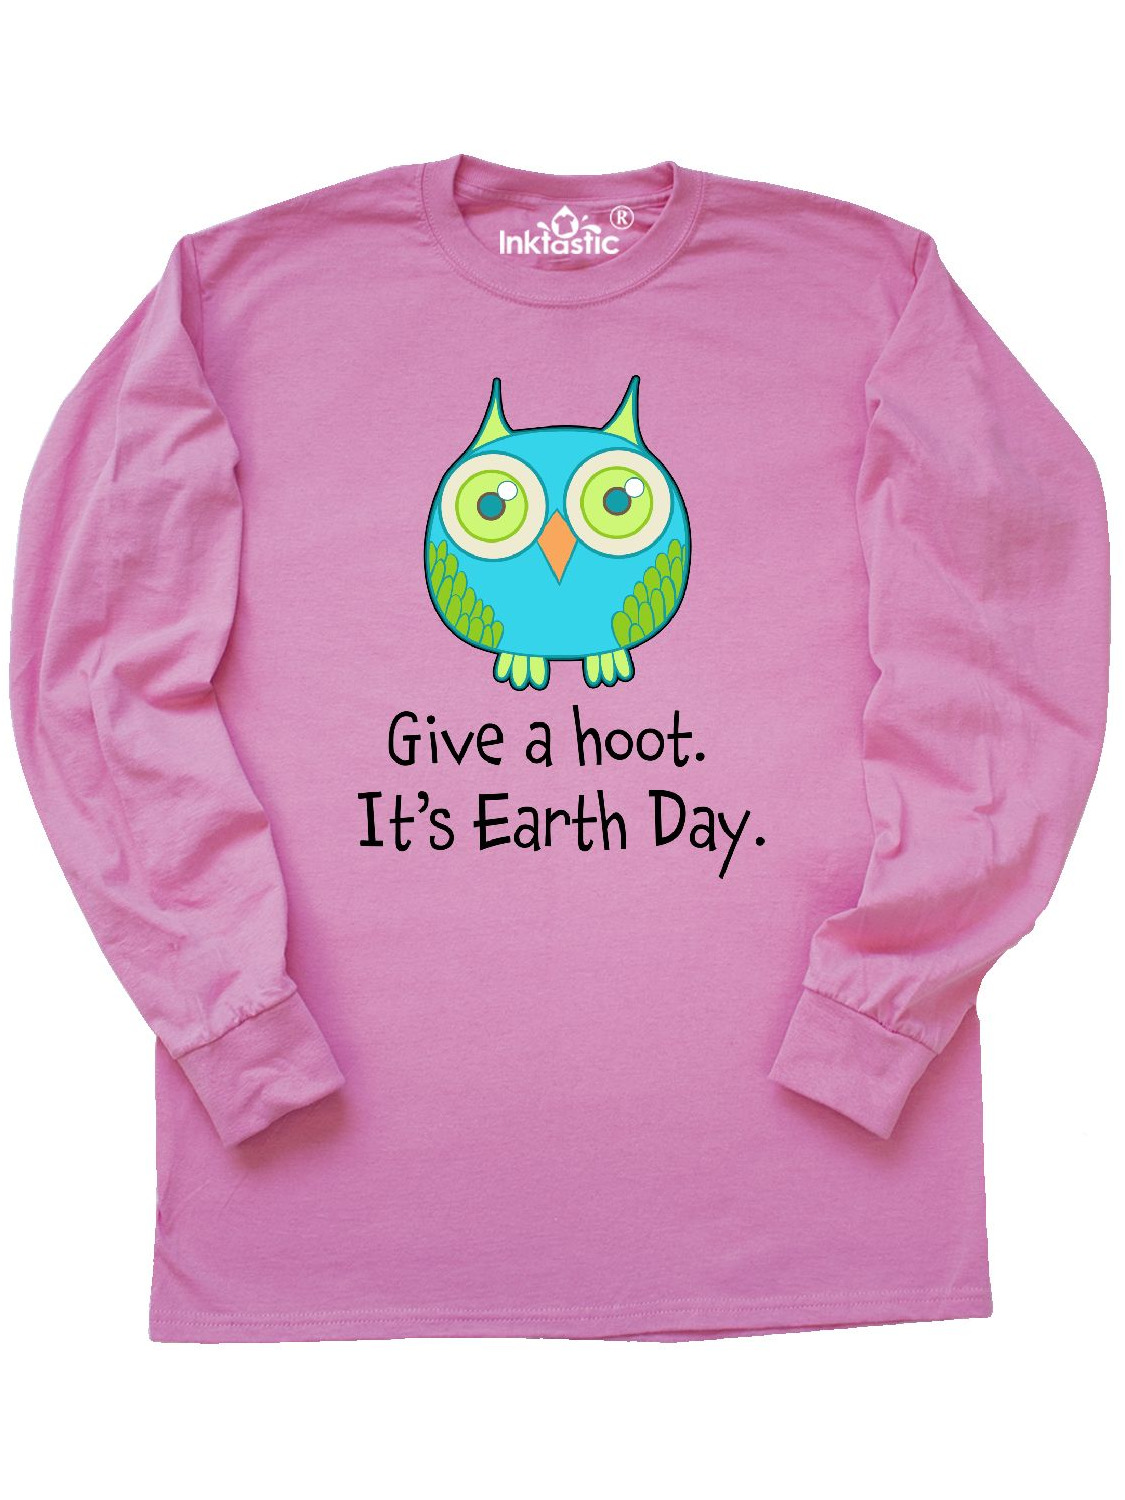 inktastic Owl Always Love You with Cute Owl and Toddler Long Sleeve T-Shirt